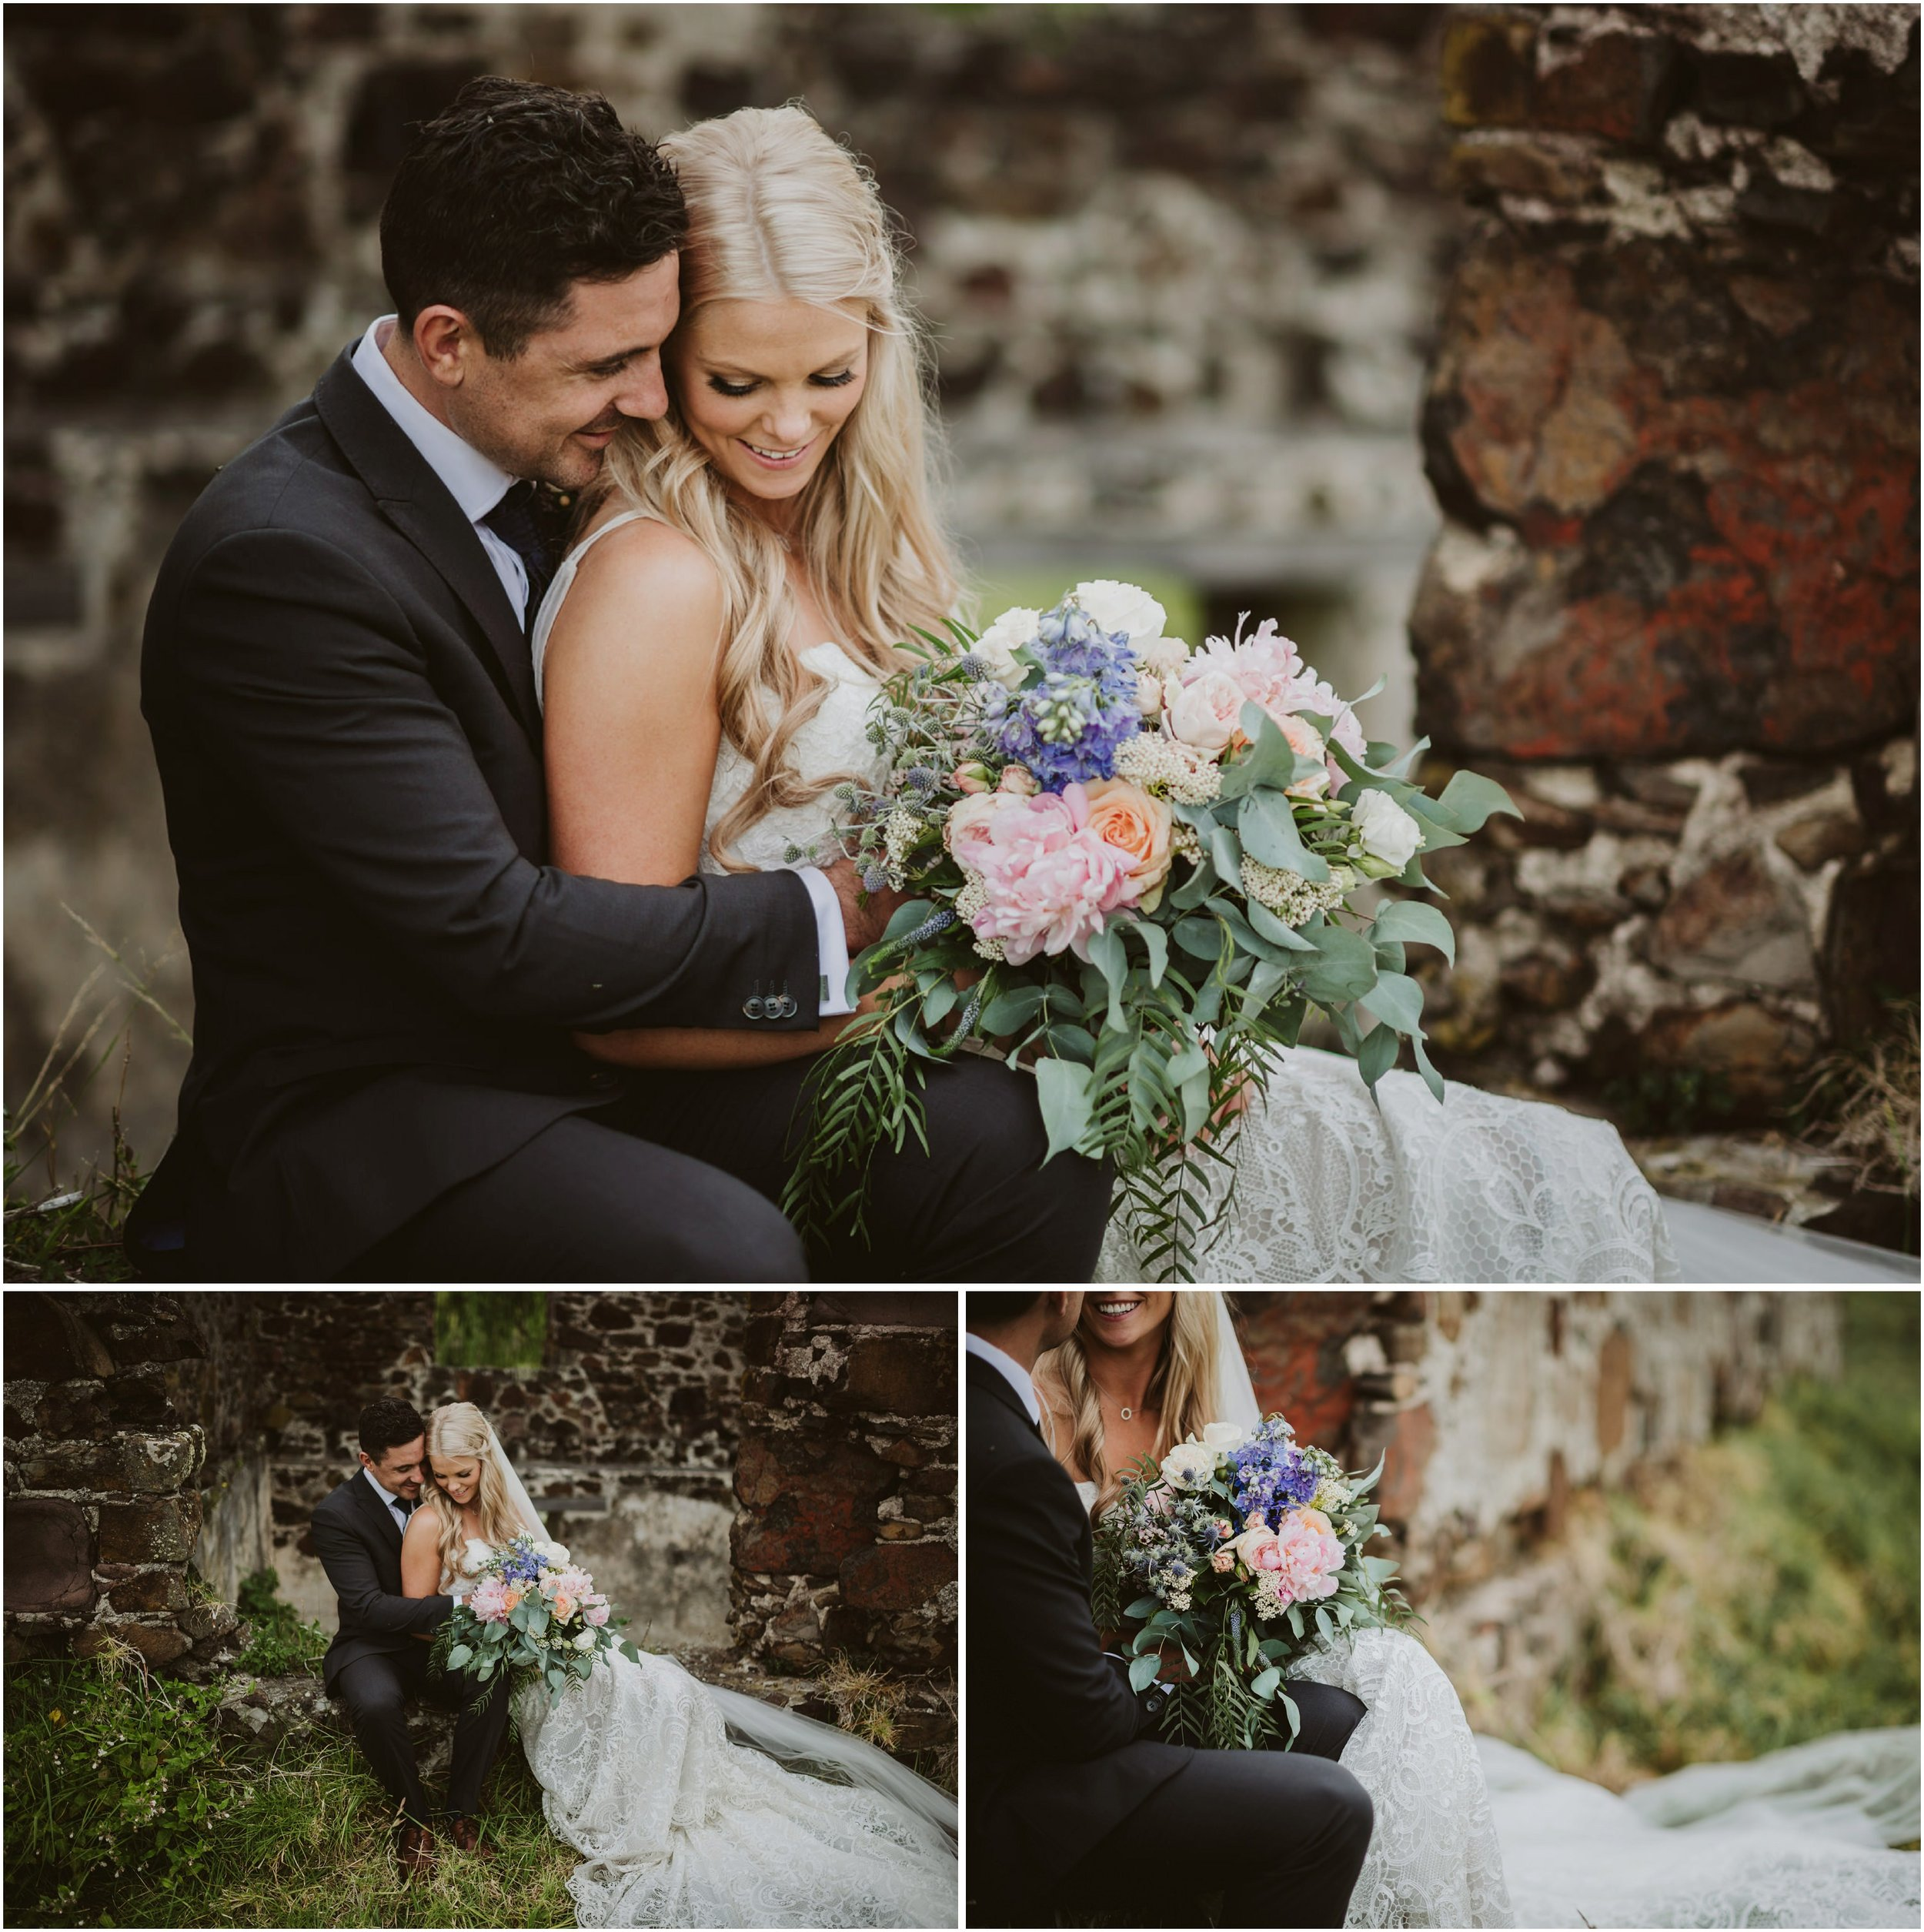 Bushbank Southern Highlands South Coast Wedding Jack Gilchrist Photography Sydney_0313.jpg